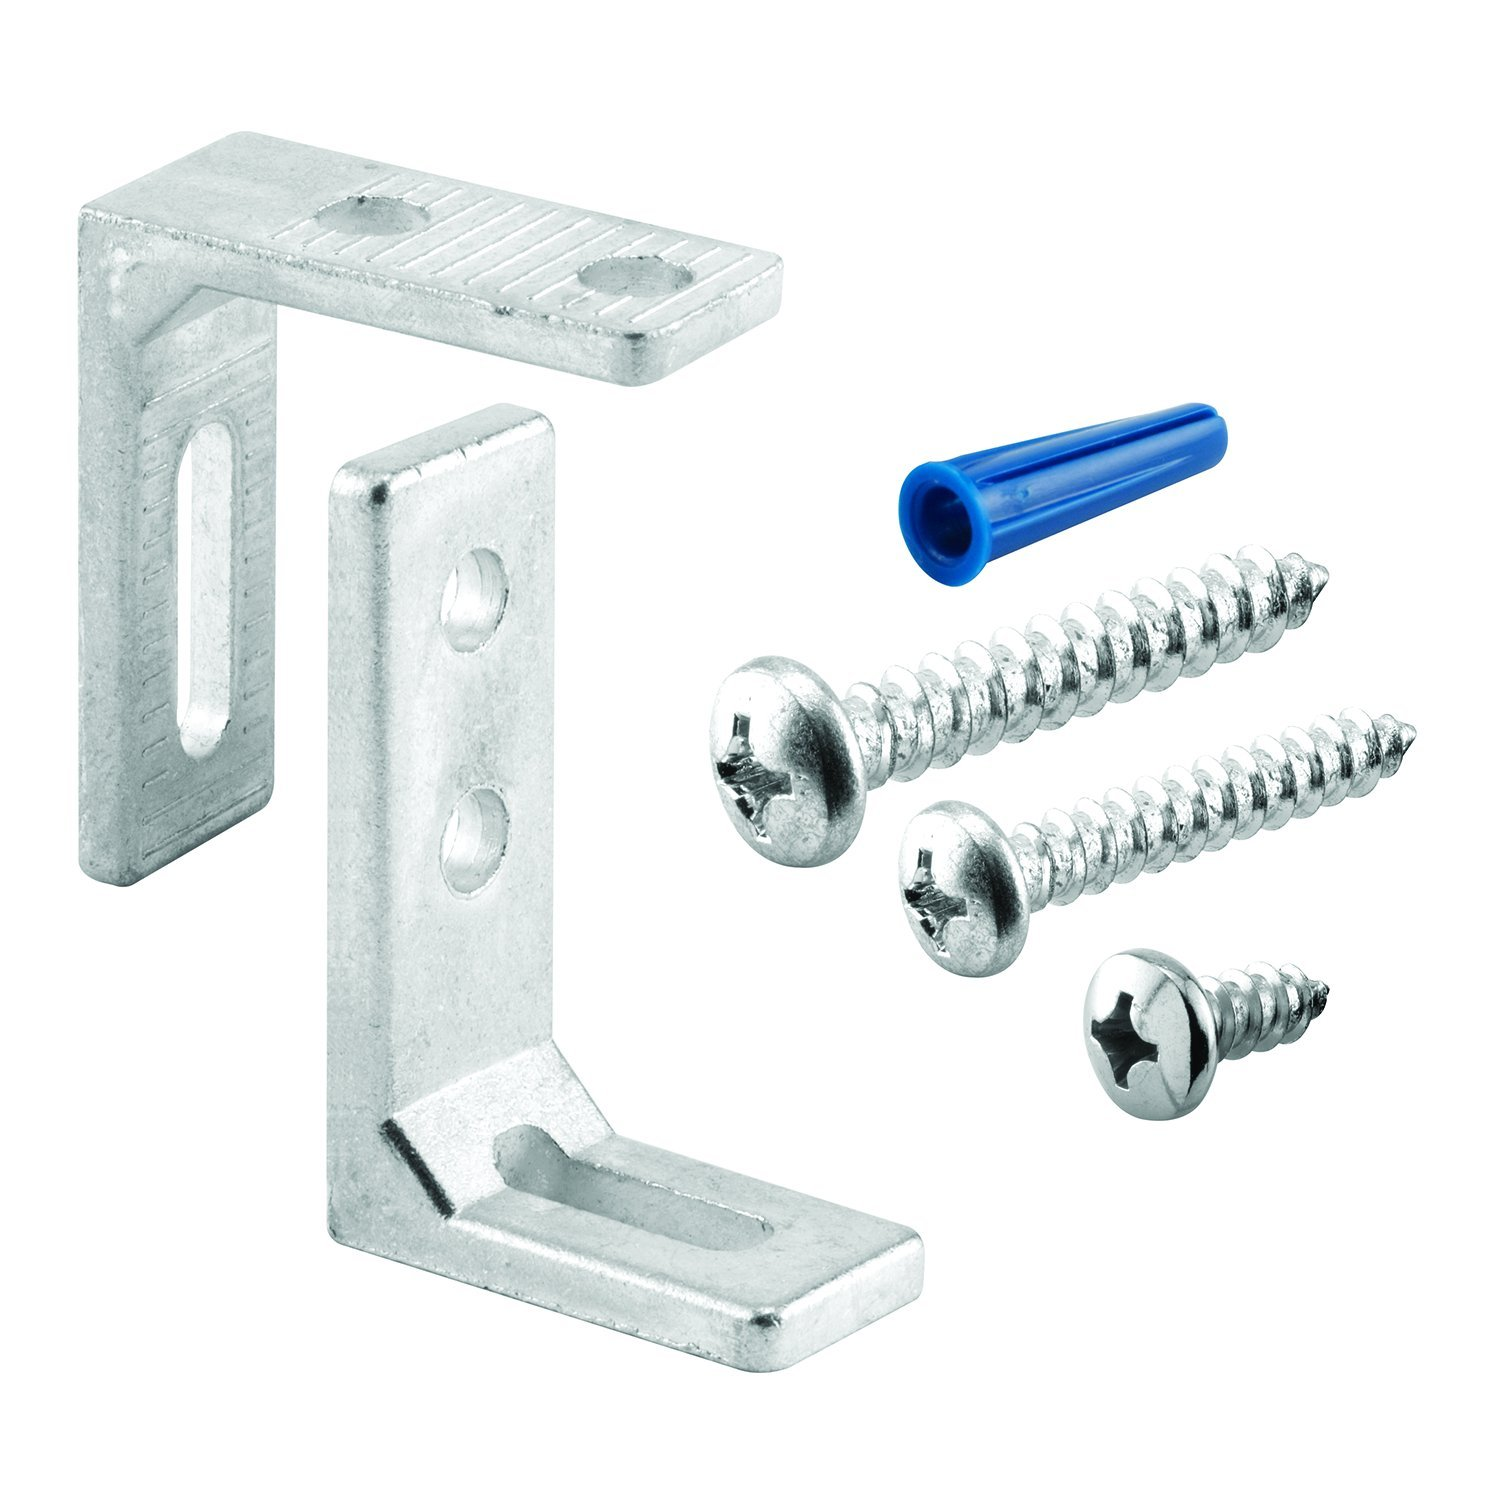 Sentry Supply 656 9408 Pilaster Anchor Pack 3 4 Inch Larger L Brackets Fasteners Pack of 1 Kit